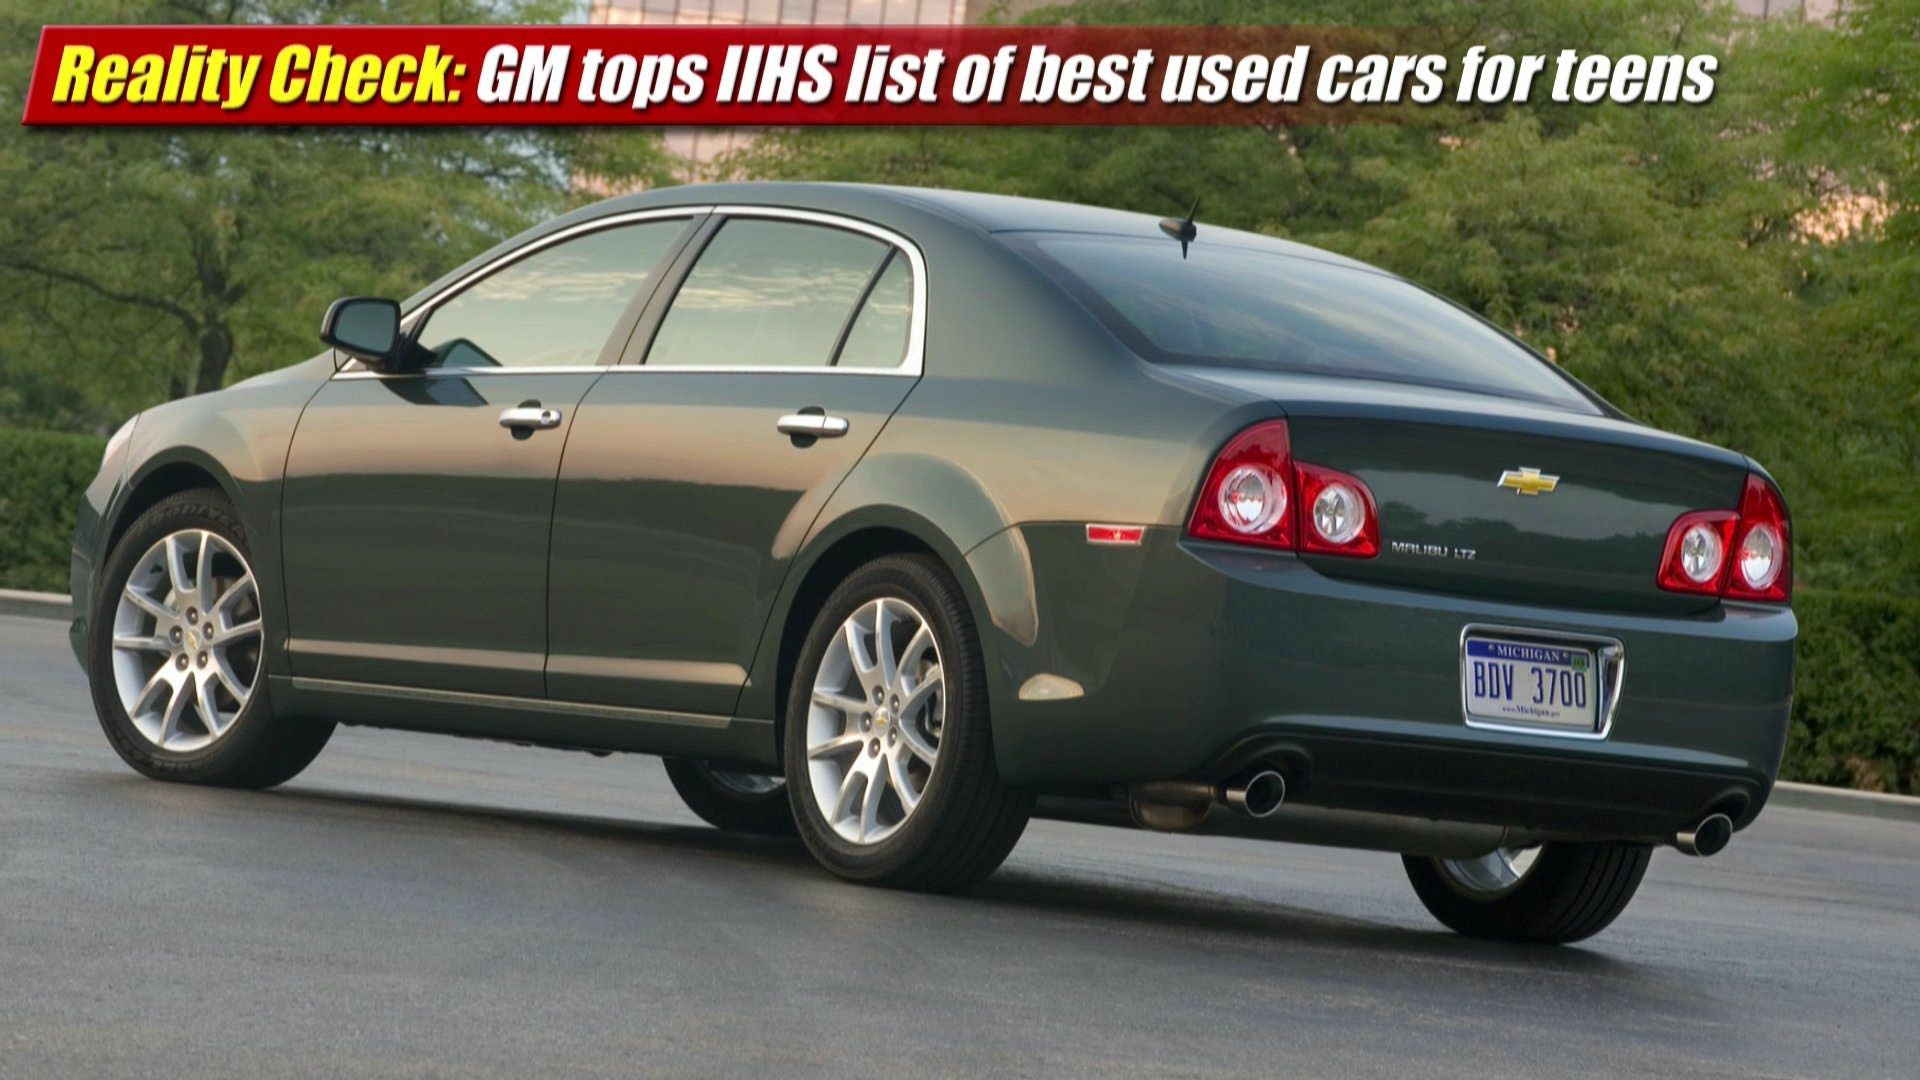 Reality Check Gm Models Top List Of Iihs Used Cars For Teens List